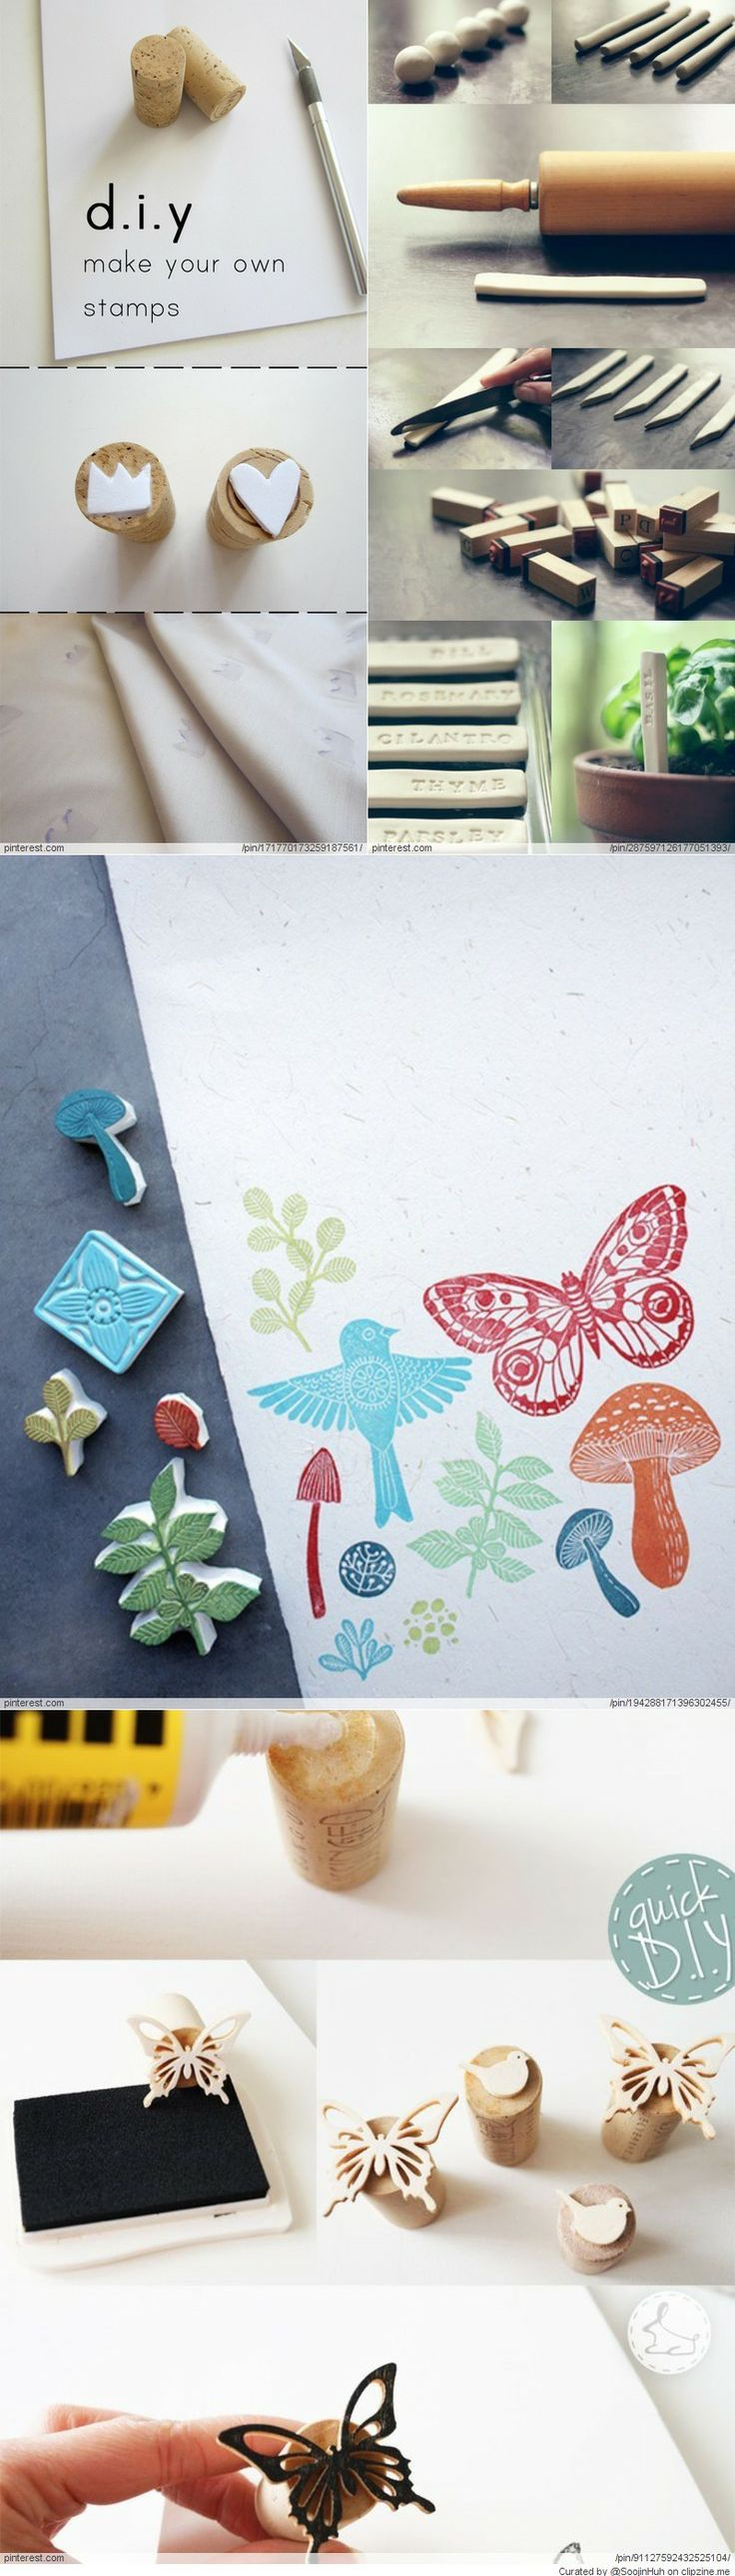 DIY Stamps & Patterns